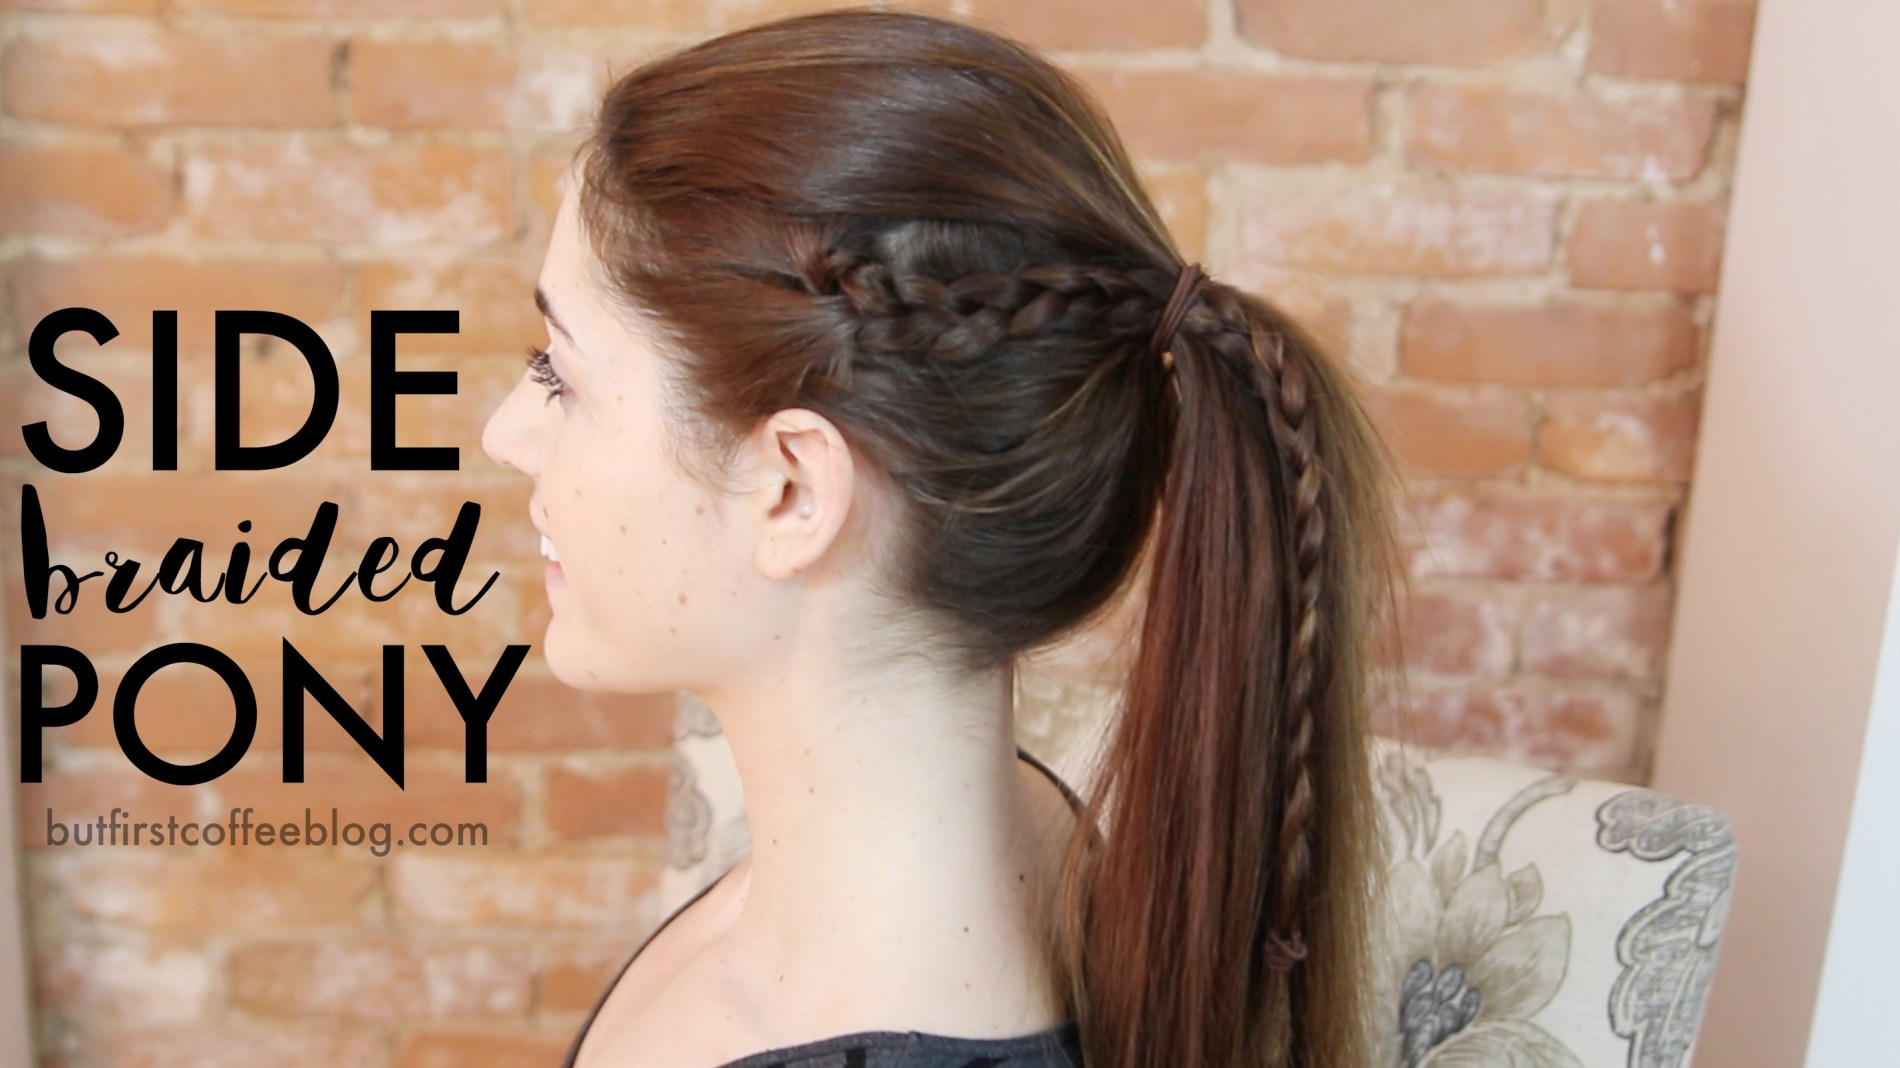 Different Ponytail Ideas - Braided Ponytail